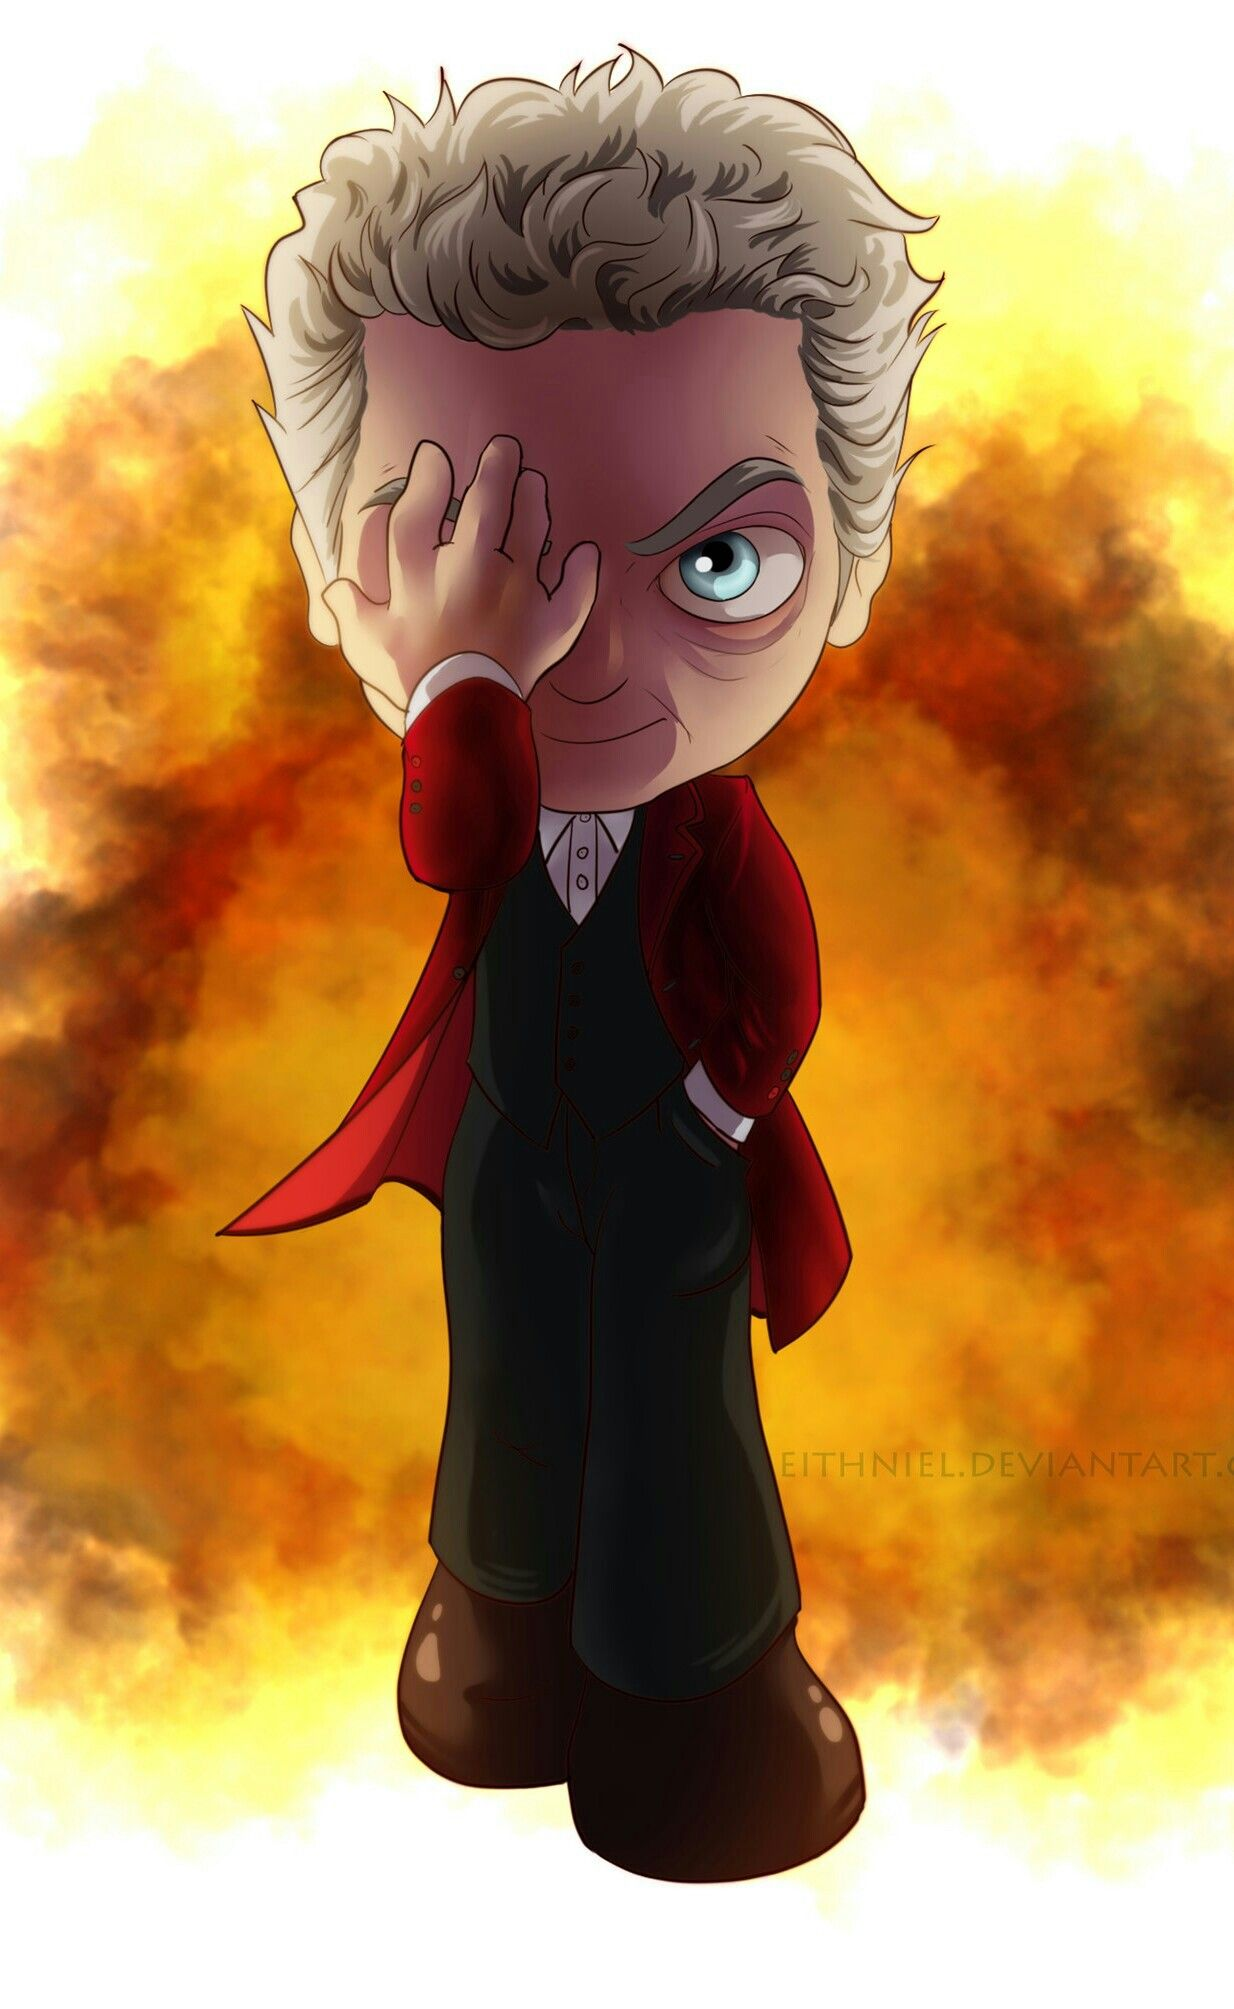 DOCTOR 12 PETER CAPALDI Doctor who art, Doctor who